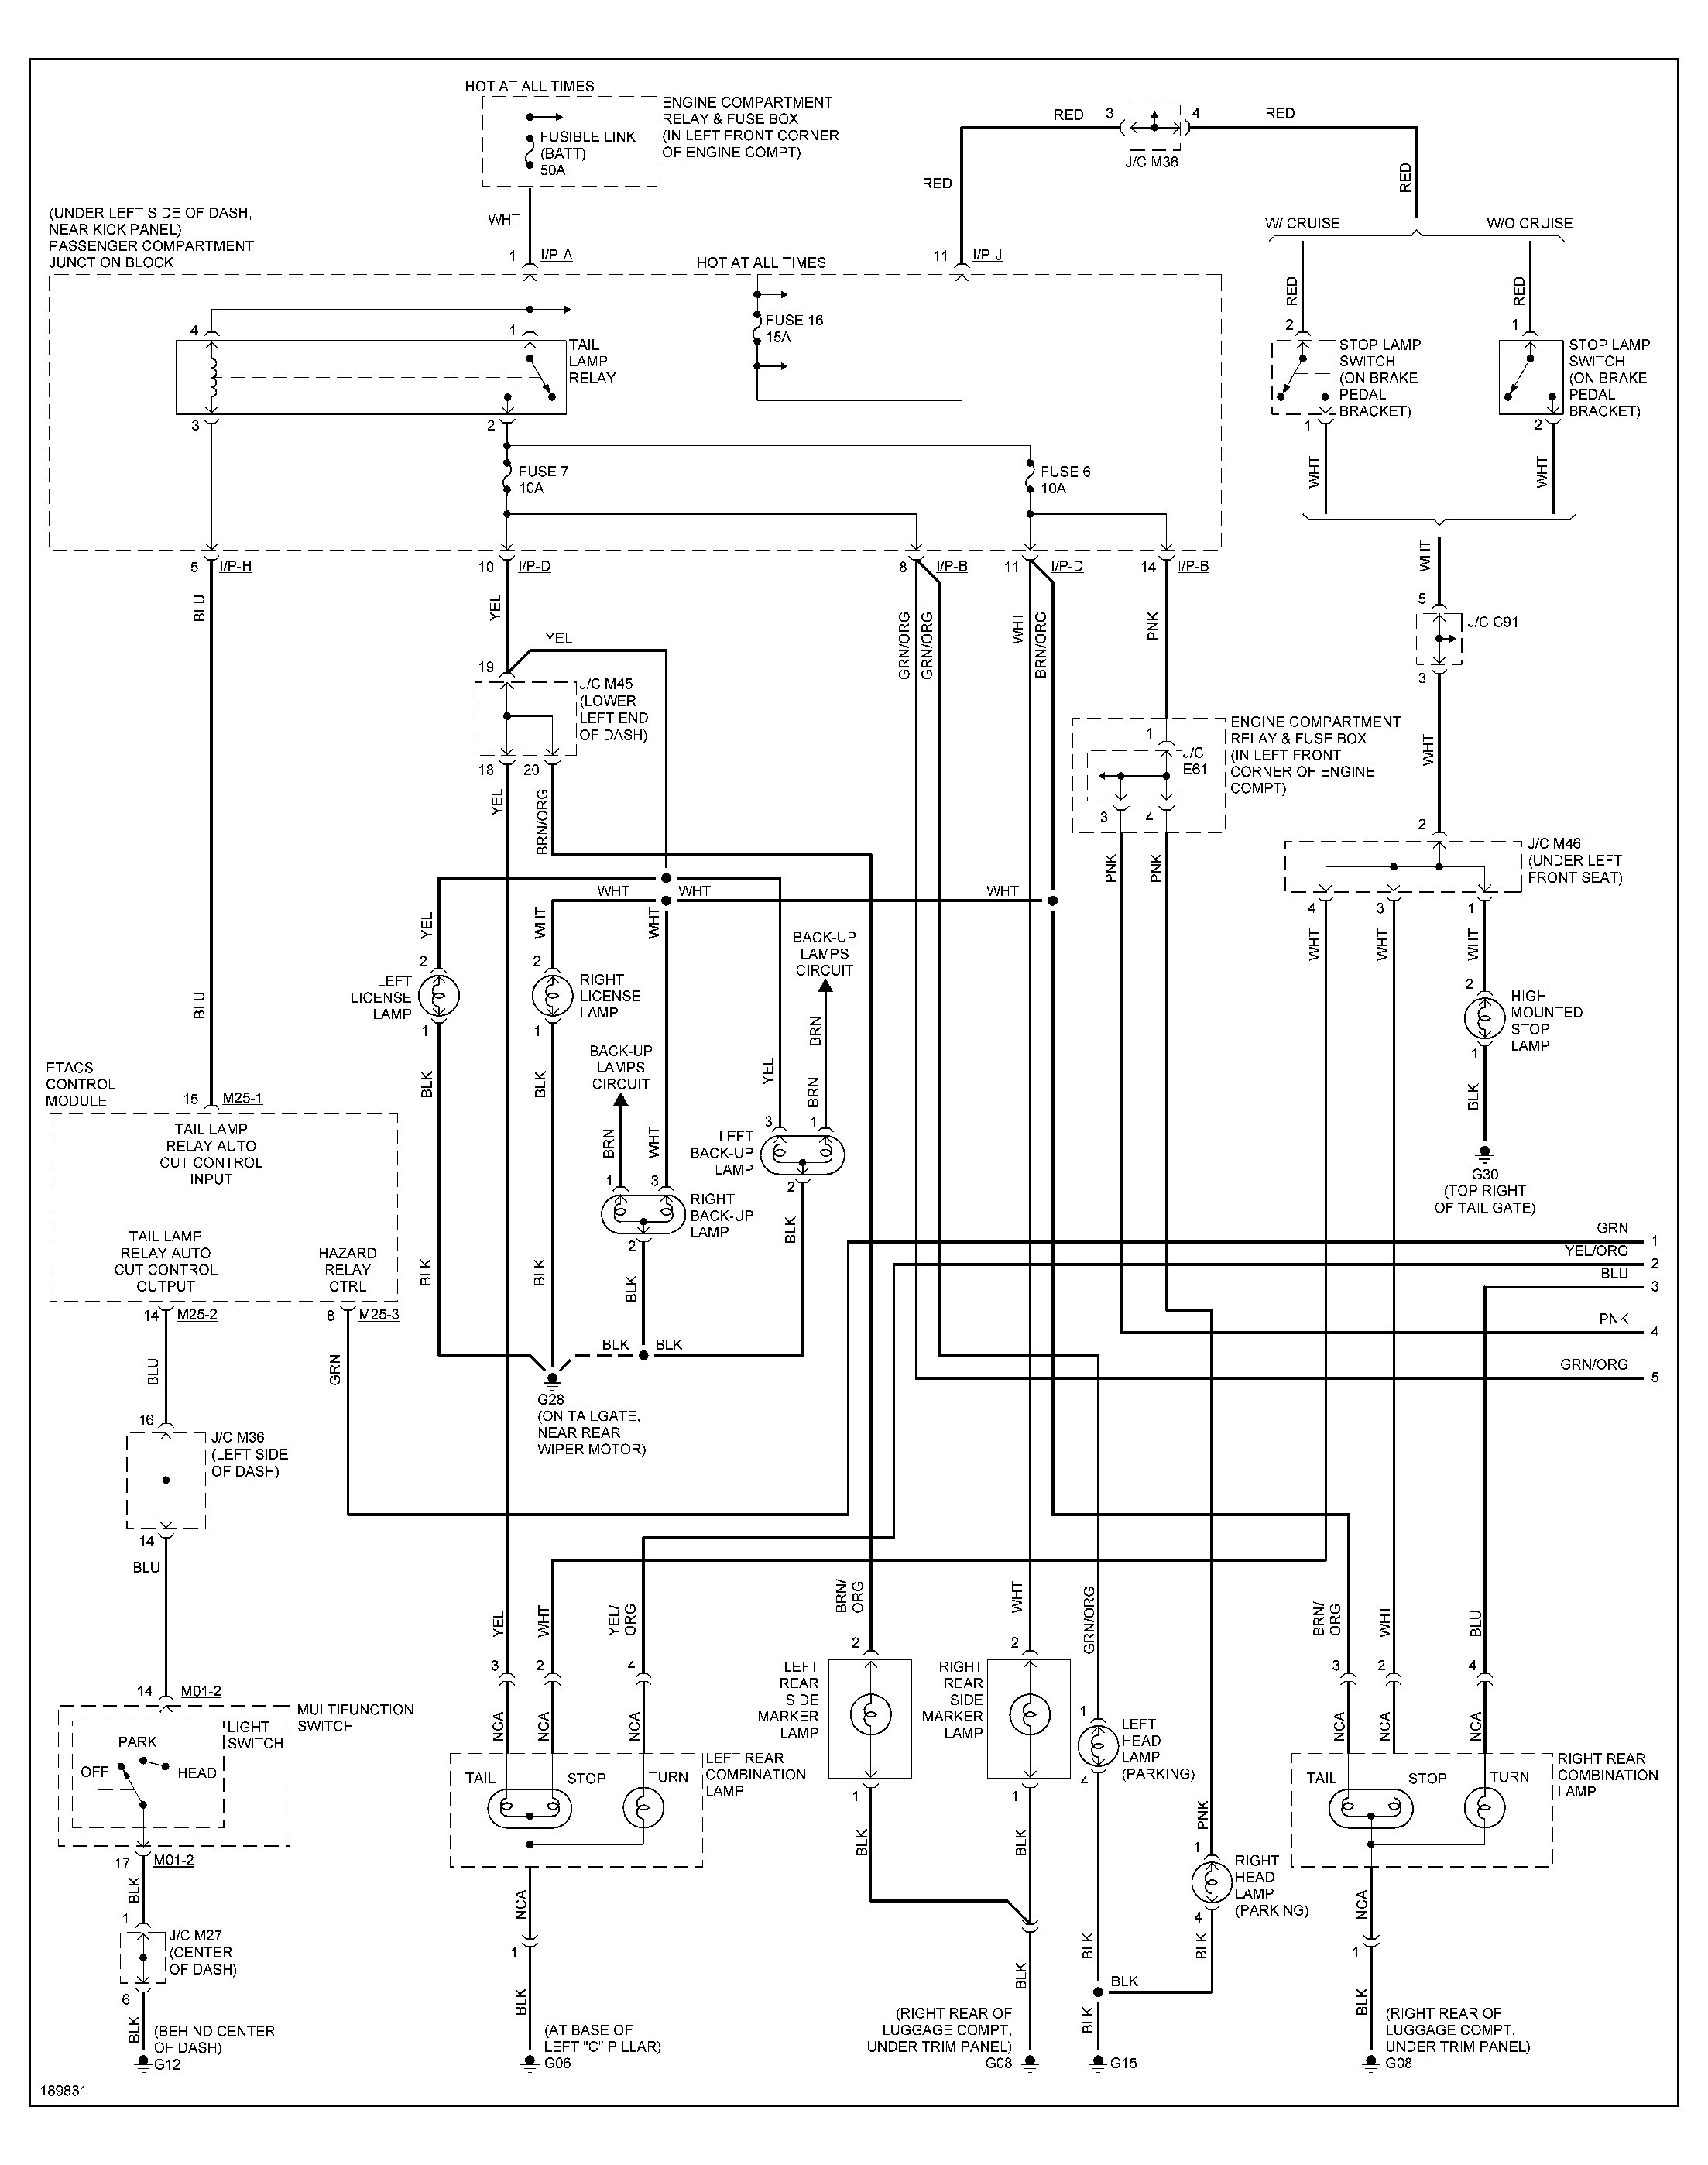 2003 hyundai accent stereo wiring diagram